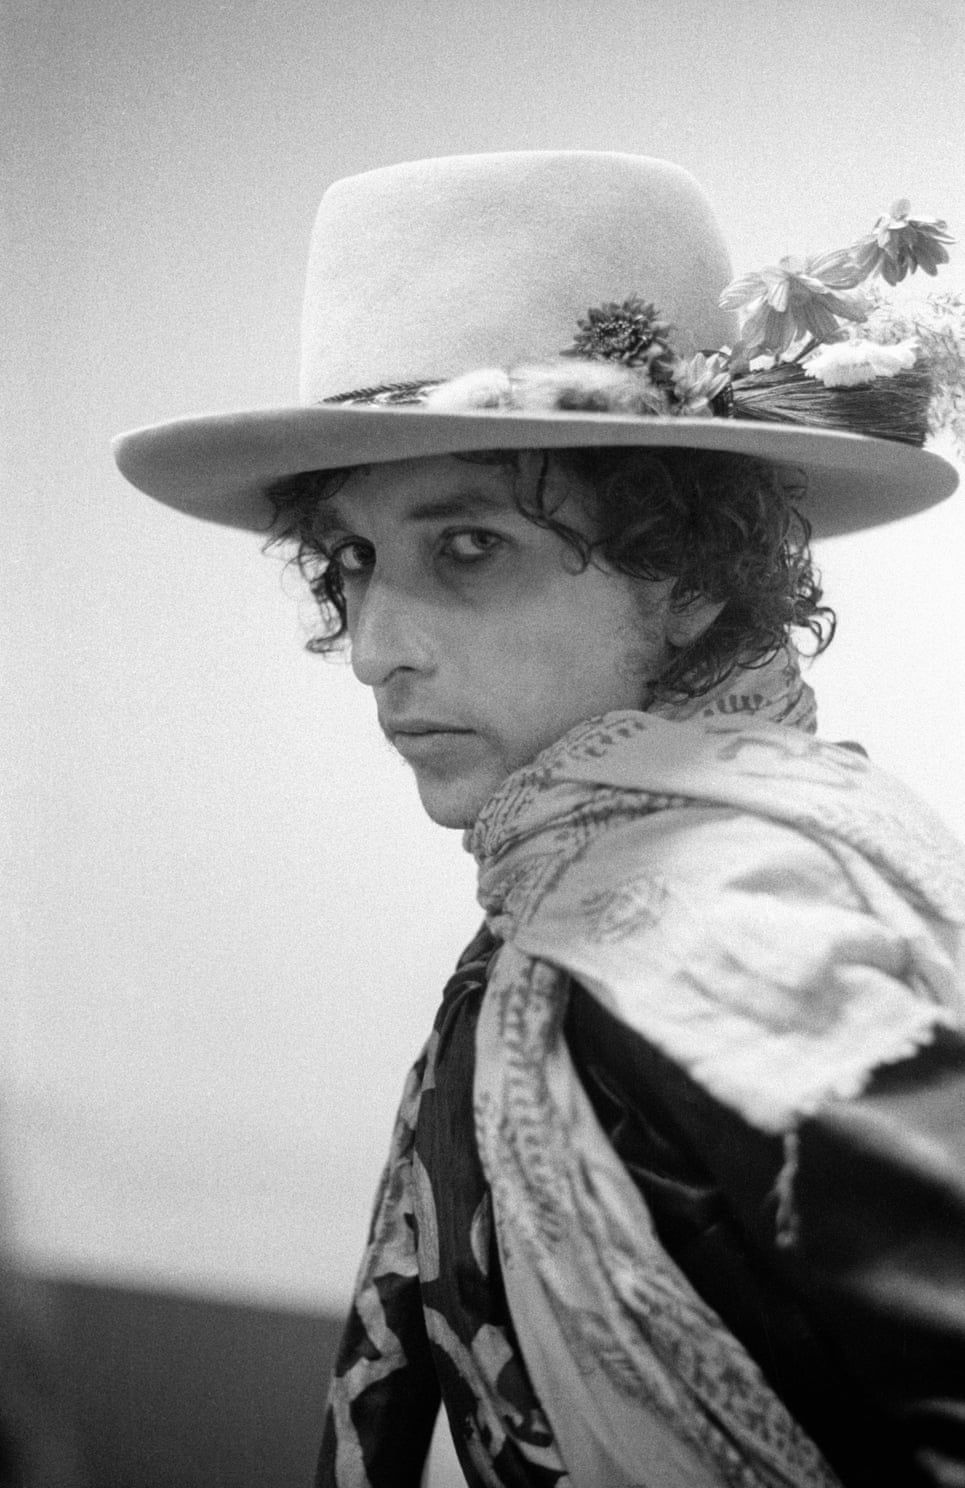 Bob Dylan And The Rolling Thunder Revue In Pictures In 2020 Bob Dylan Dylan Music Legends